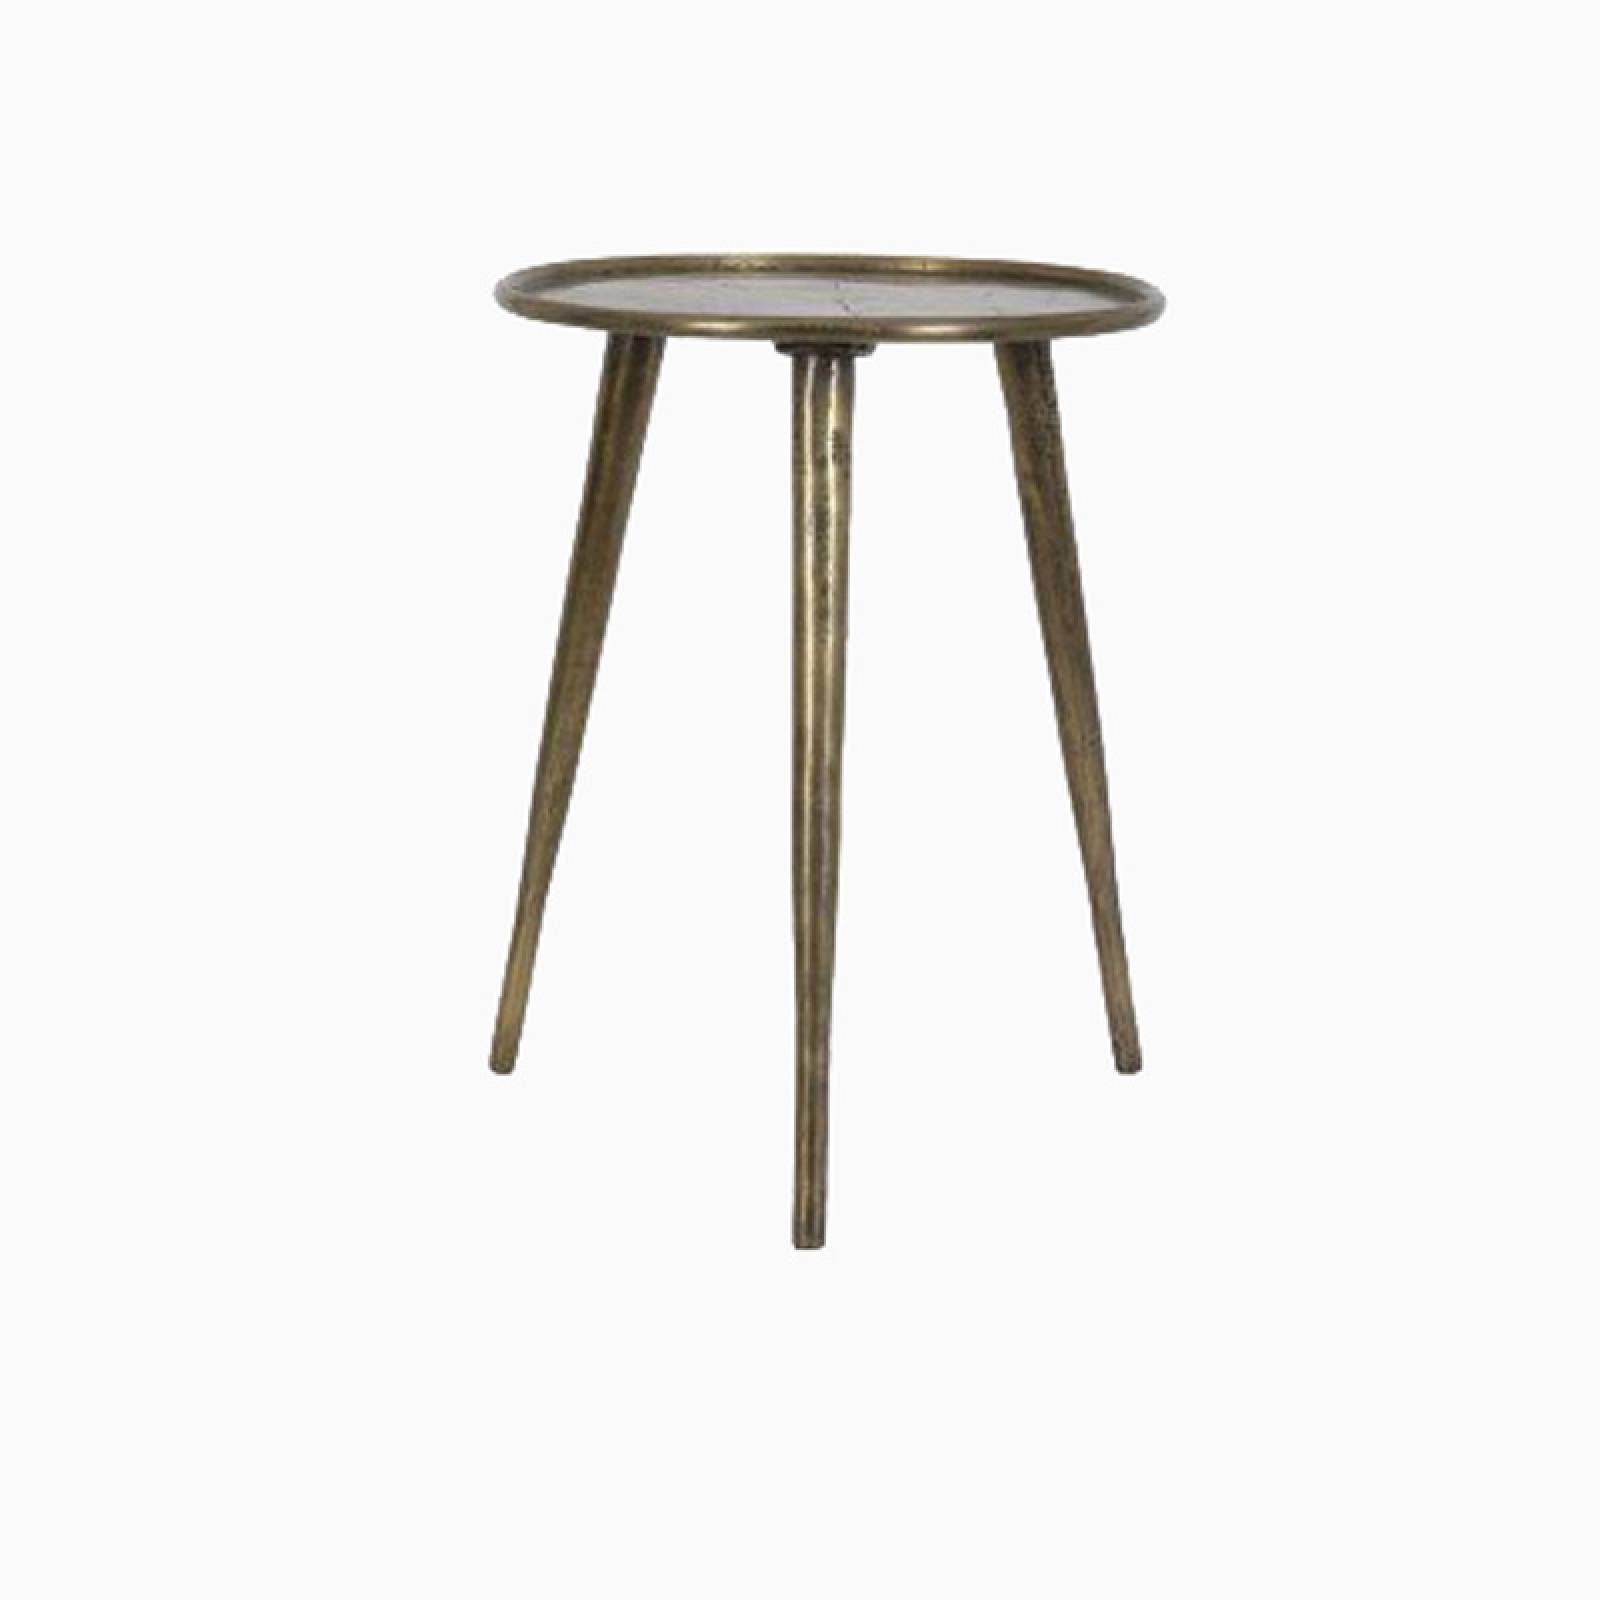 Chak Circular Side Table With Tripod Legs In Antique Bronze